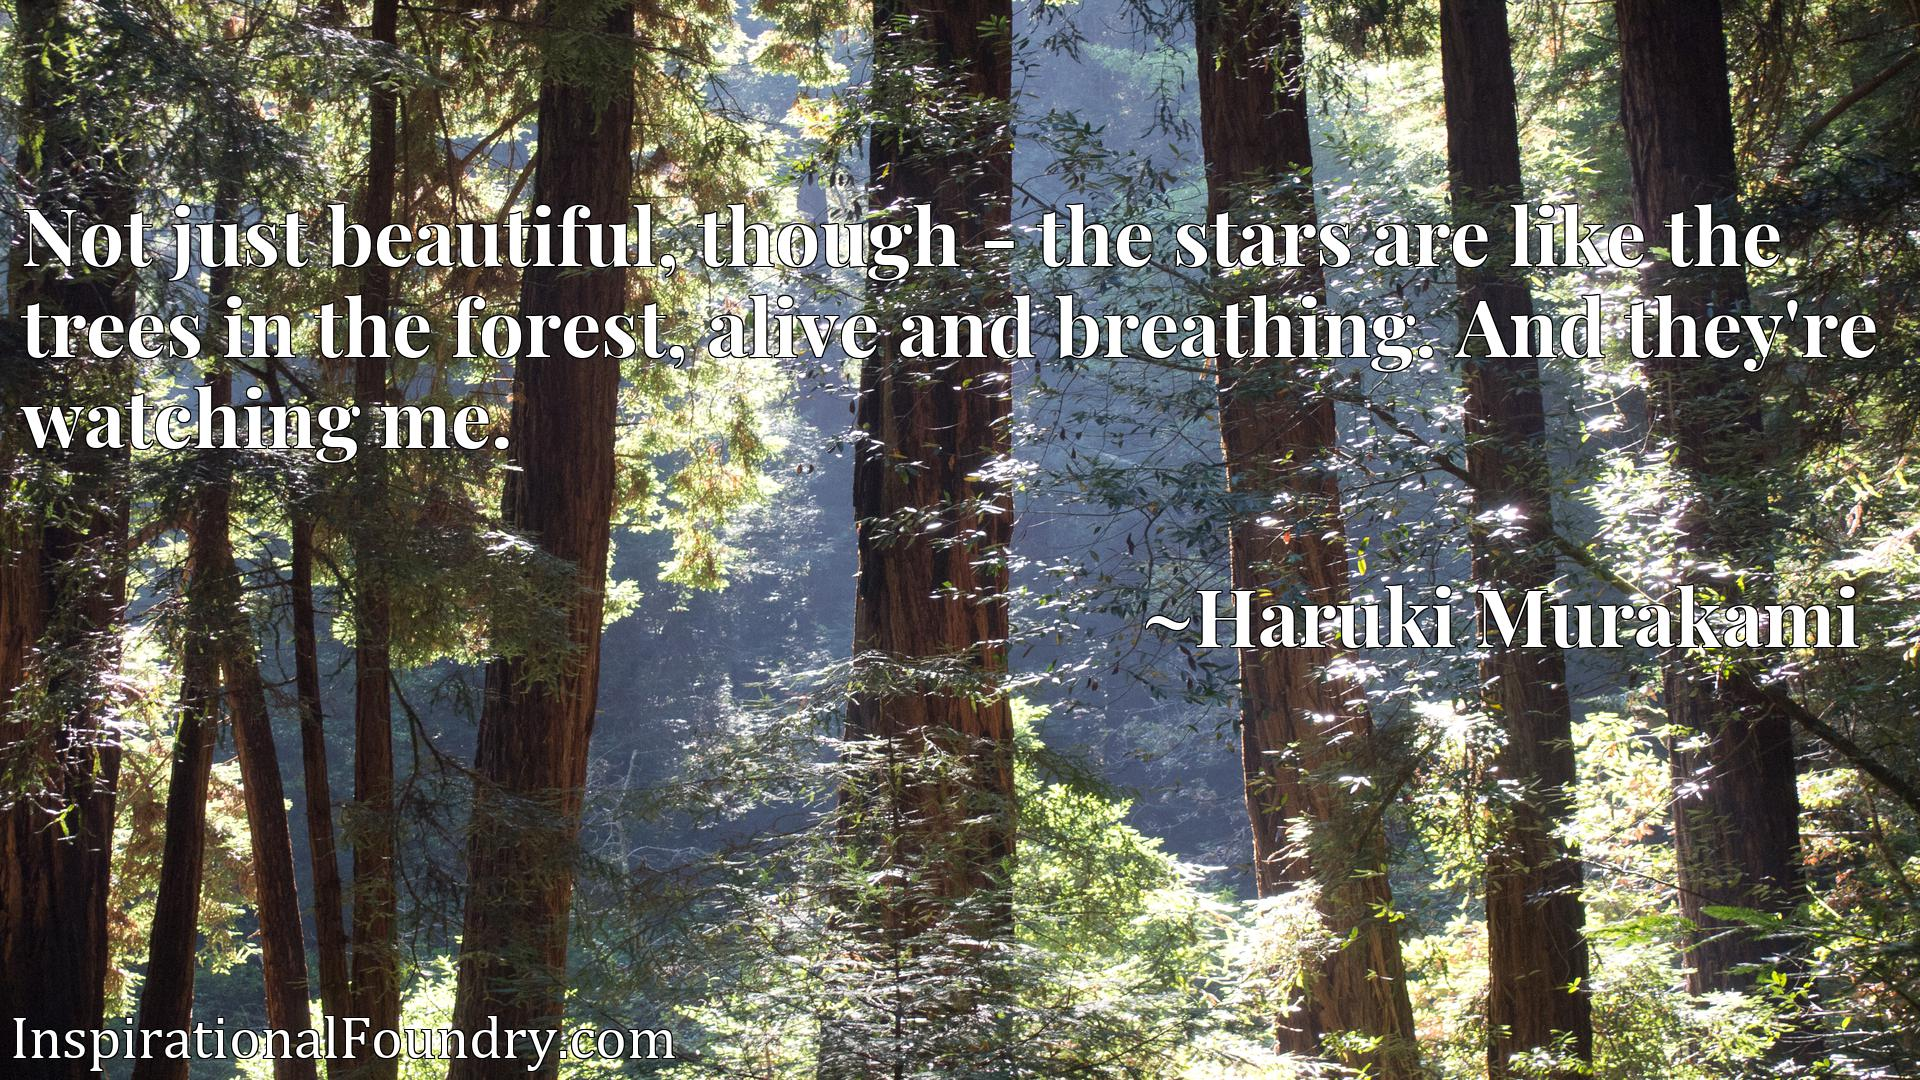 Not just beautiful, though - the stars are like the trees in the forest, alive and breathing. And they're watching me.